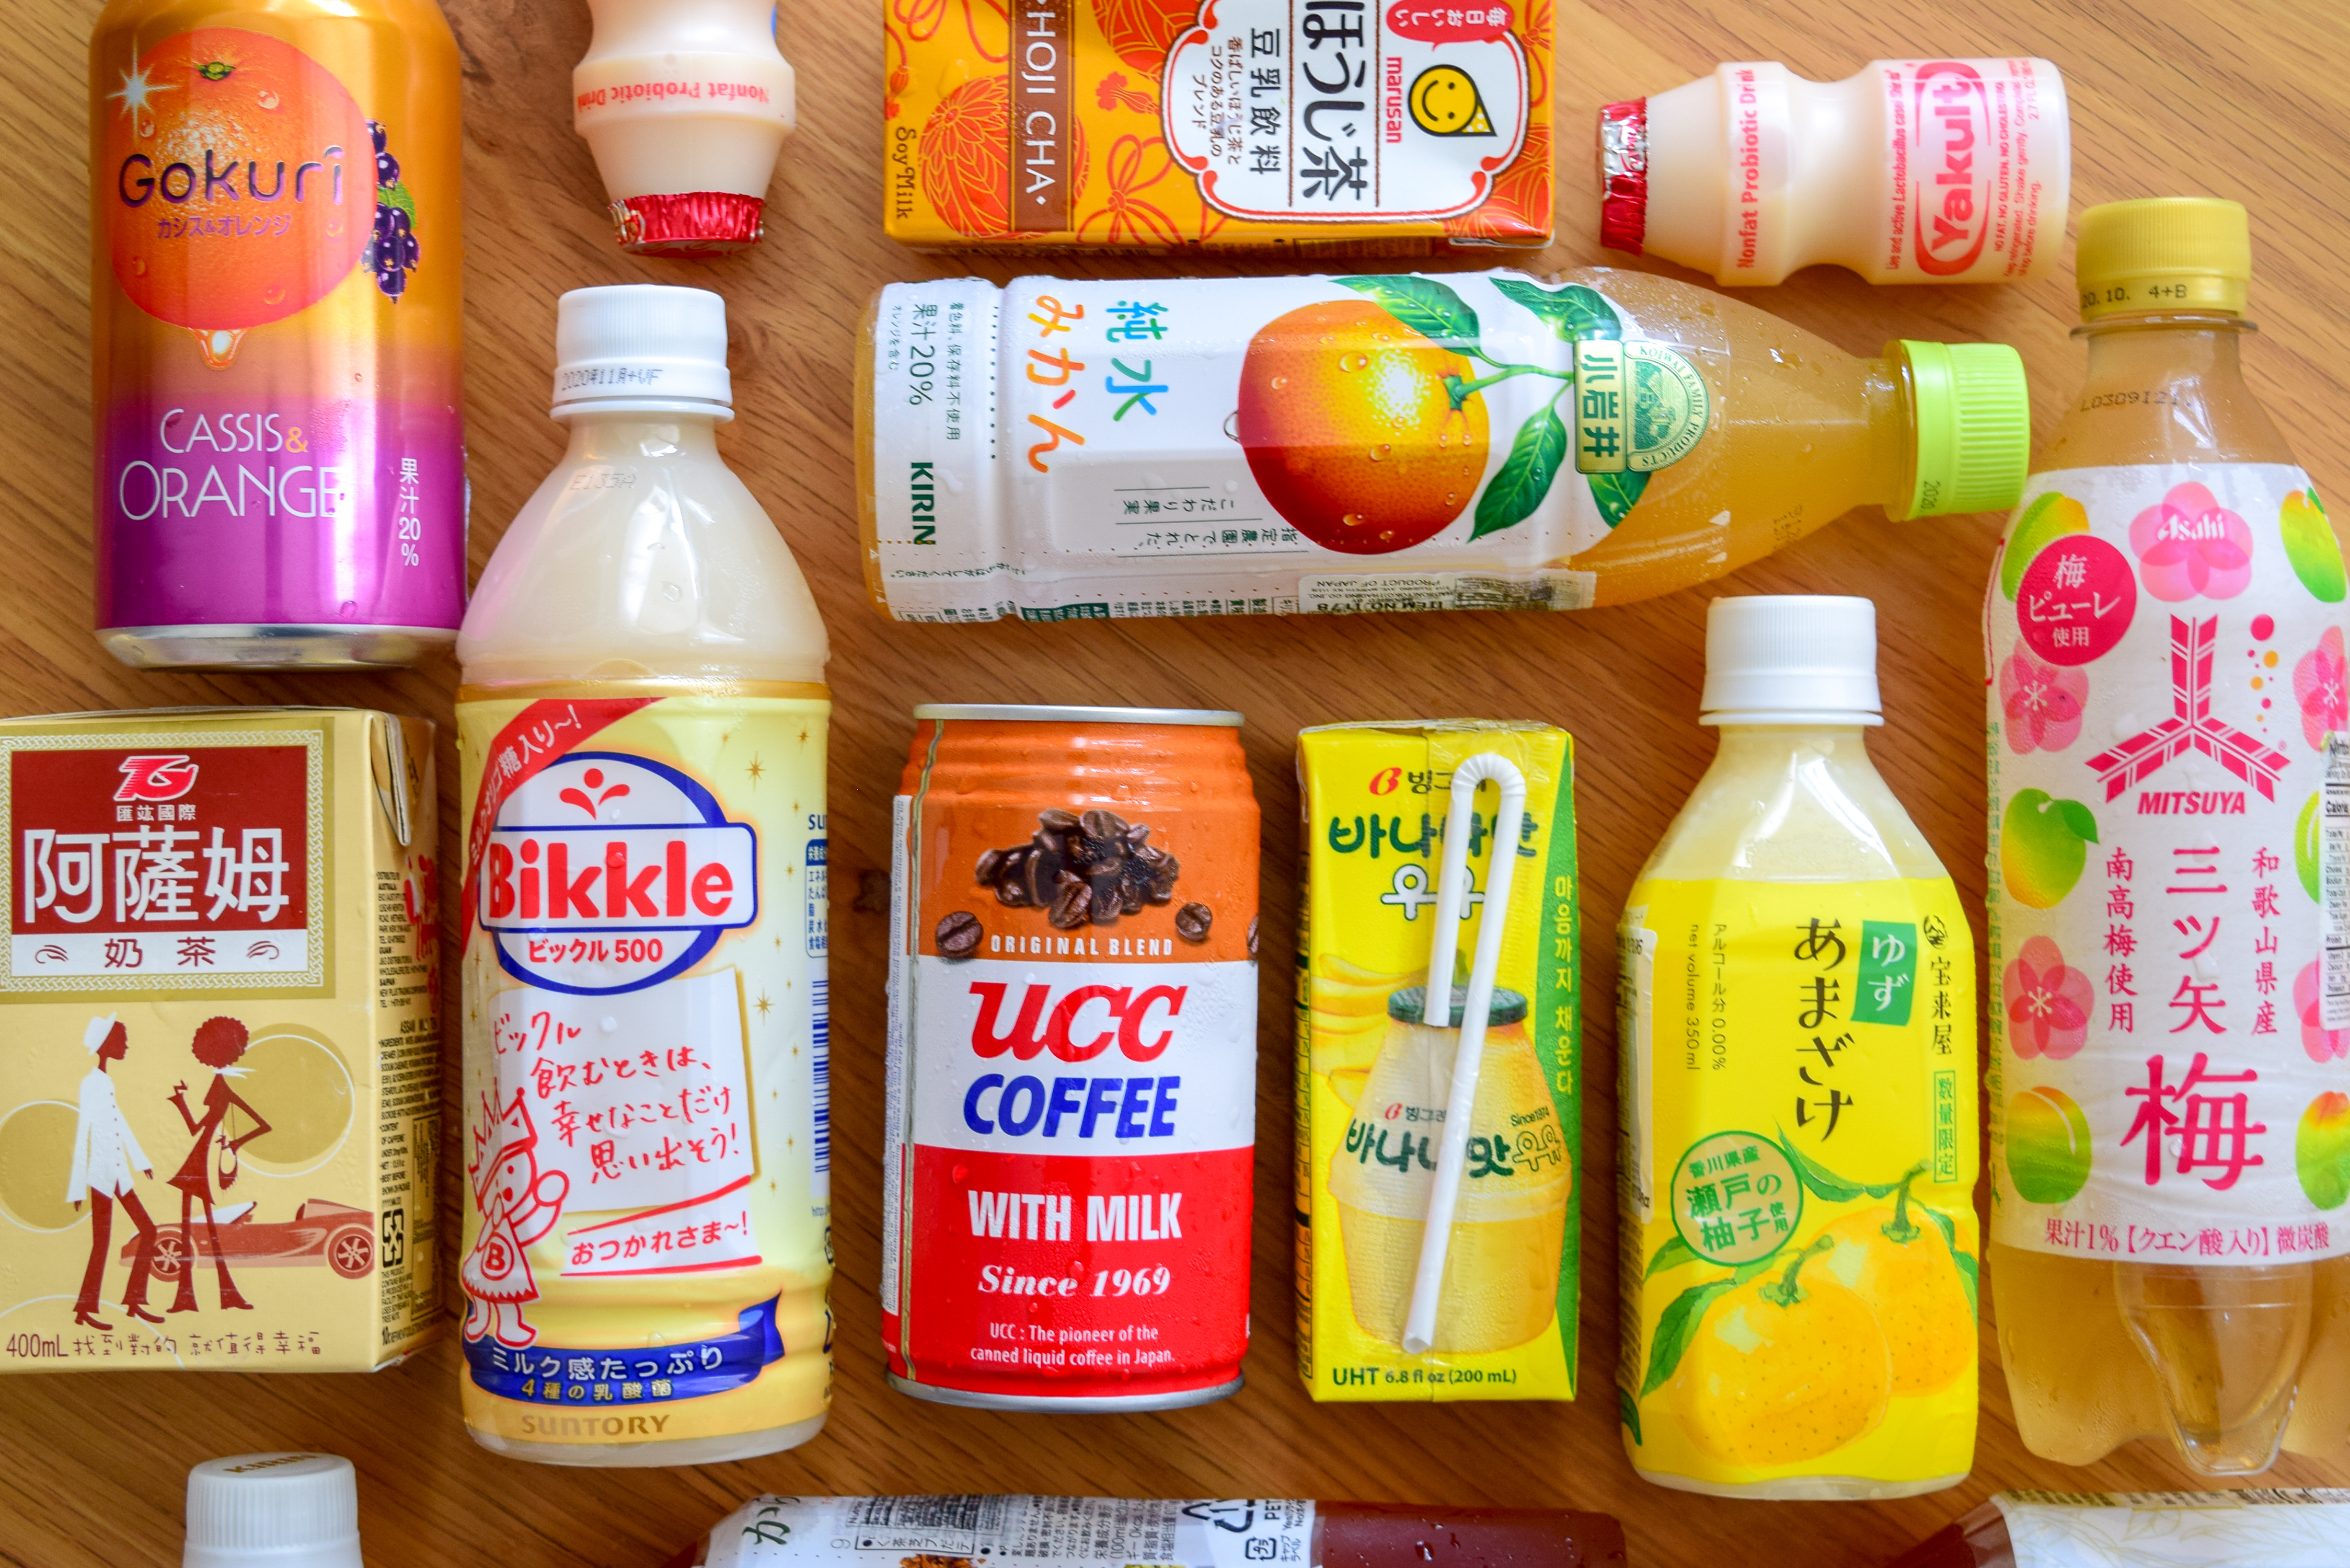 Overhead view of various juice boxes and sodas.